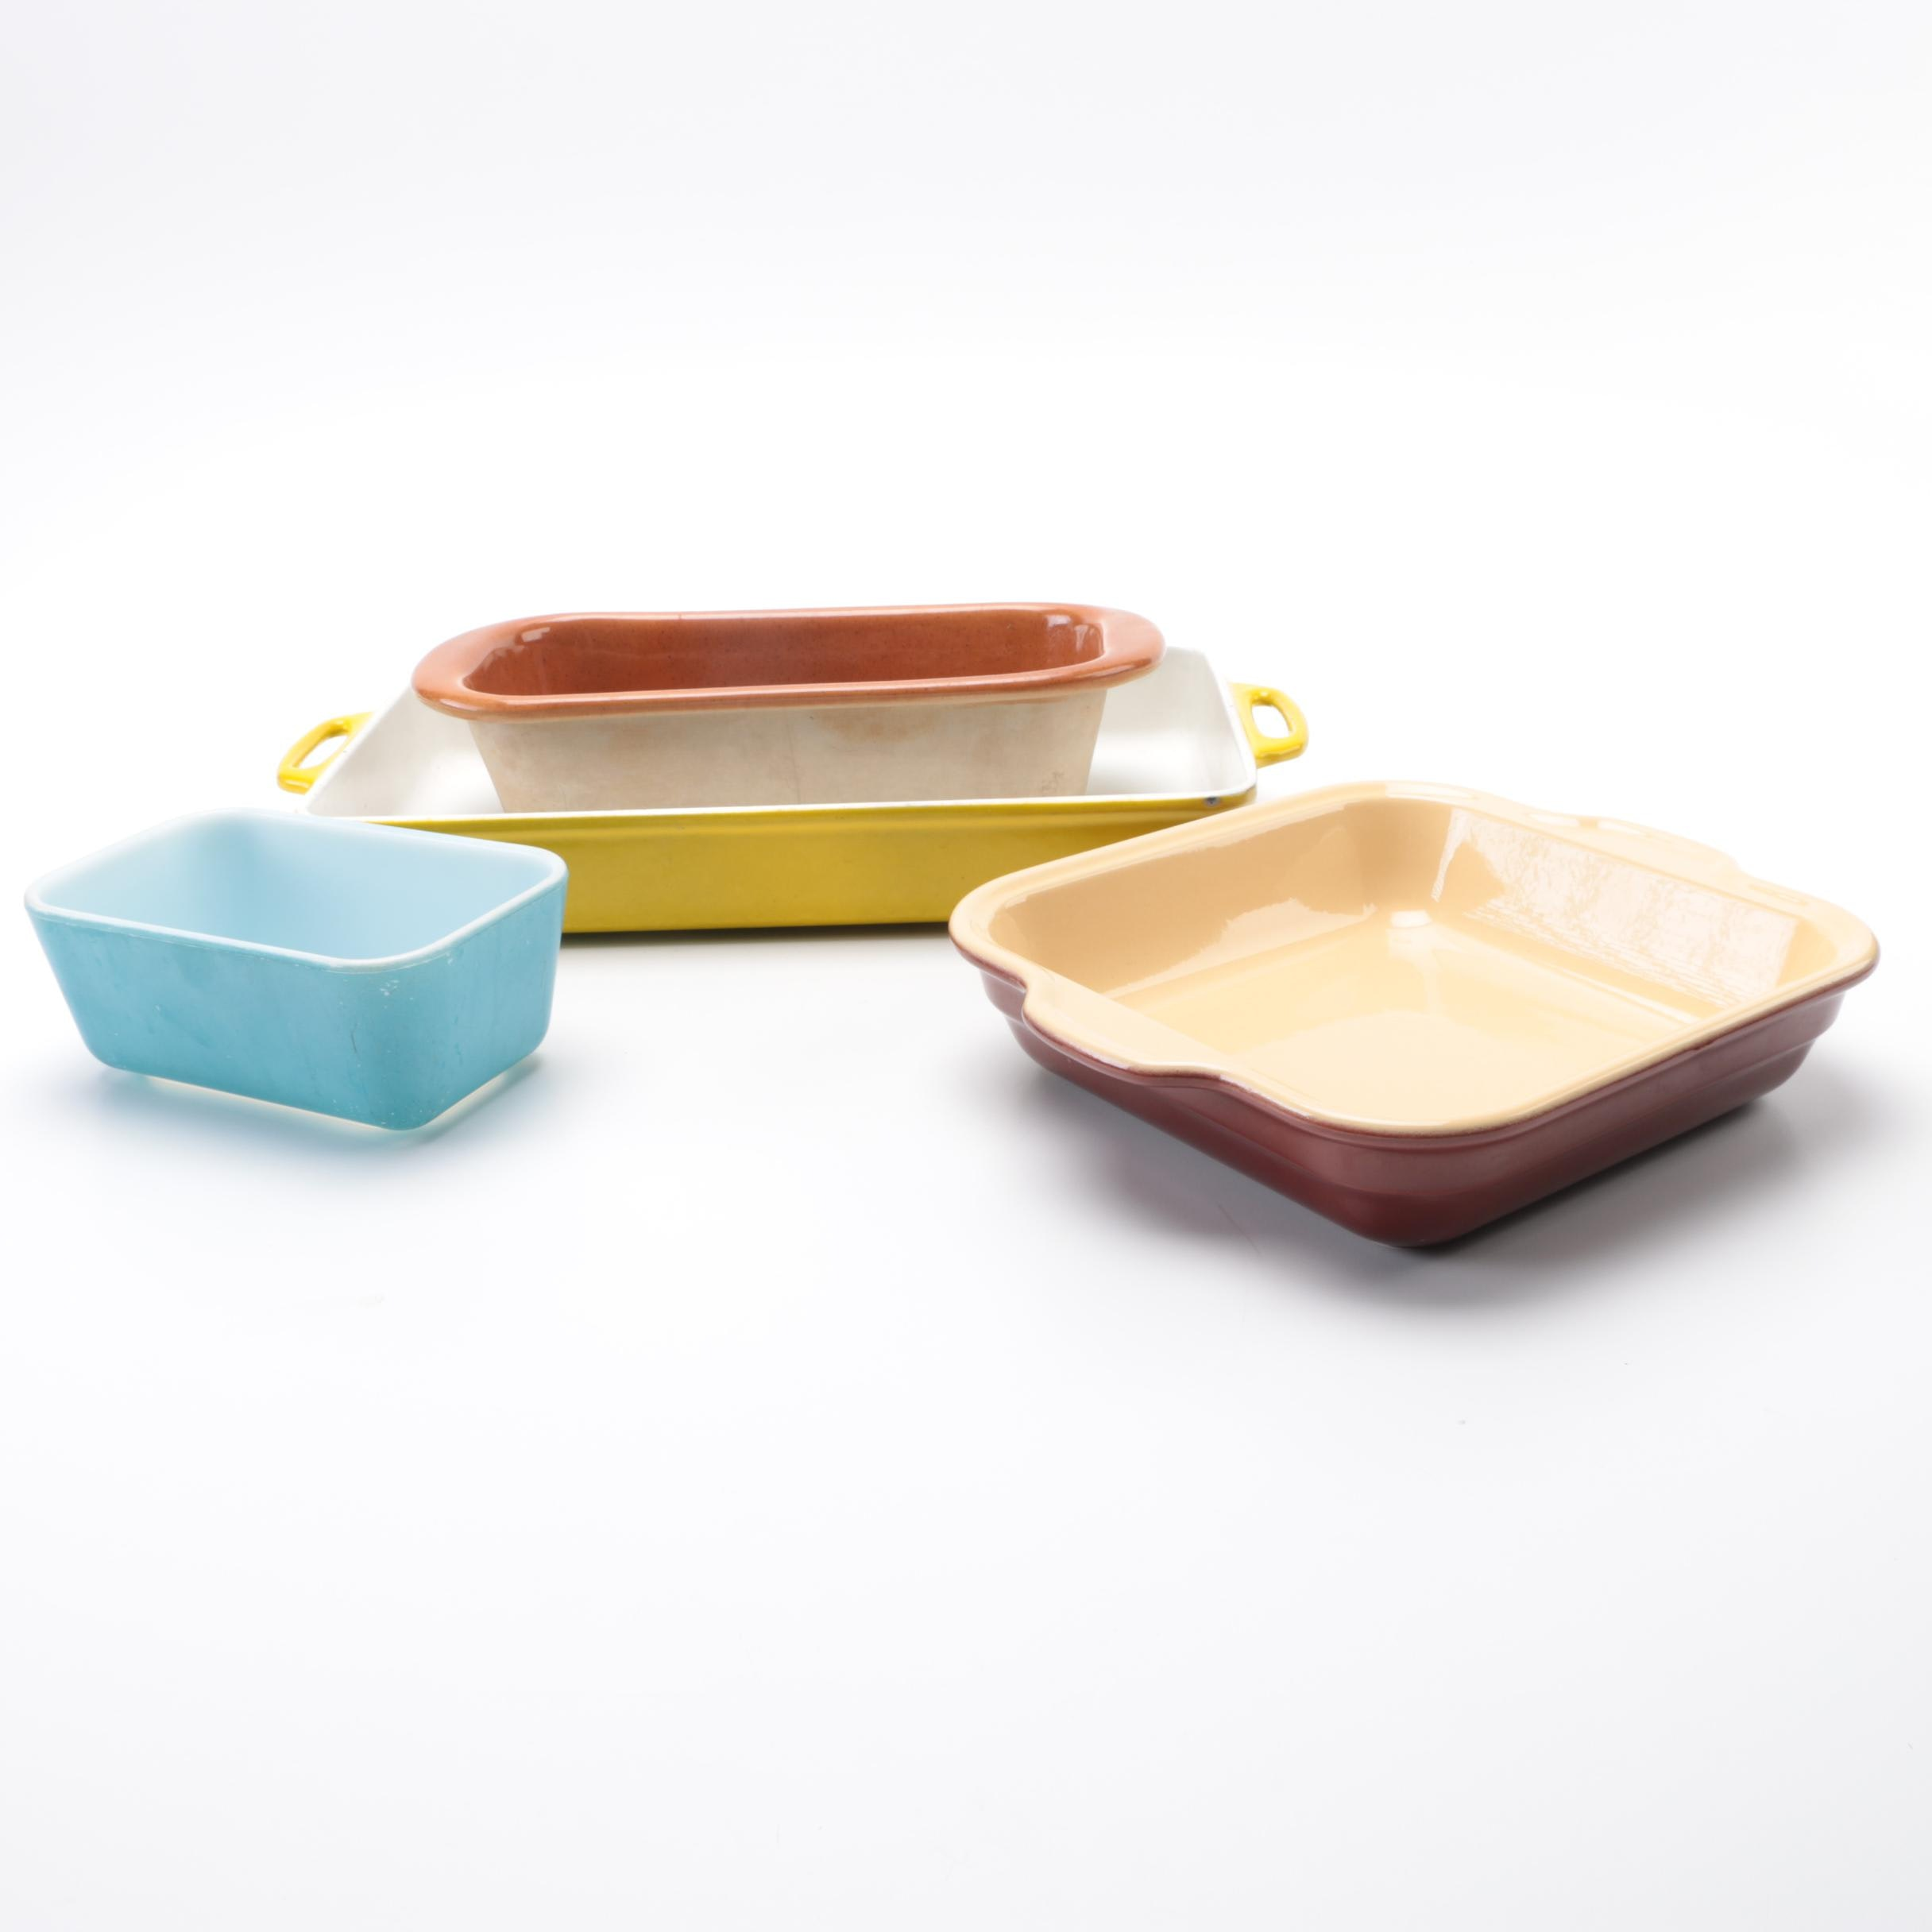 PRIORITY-Assorted Bakeware including Emile Henry and Bennington Potters